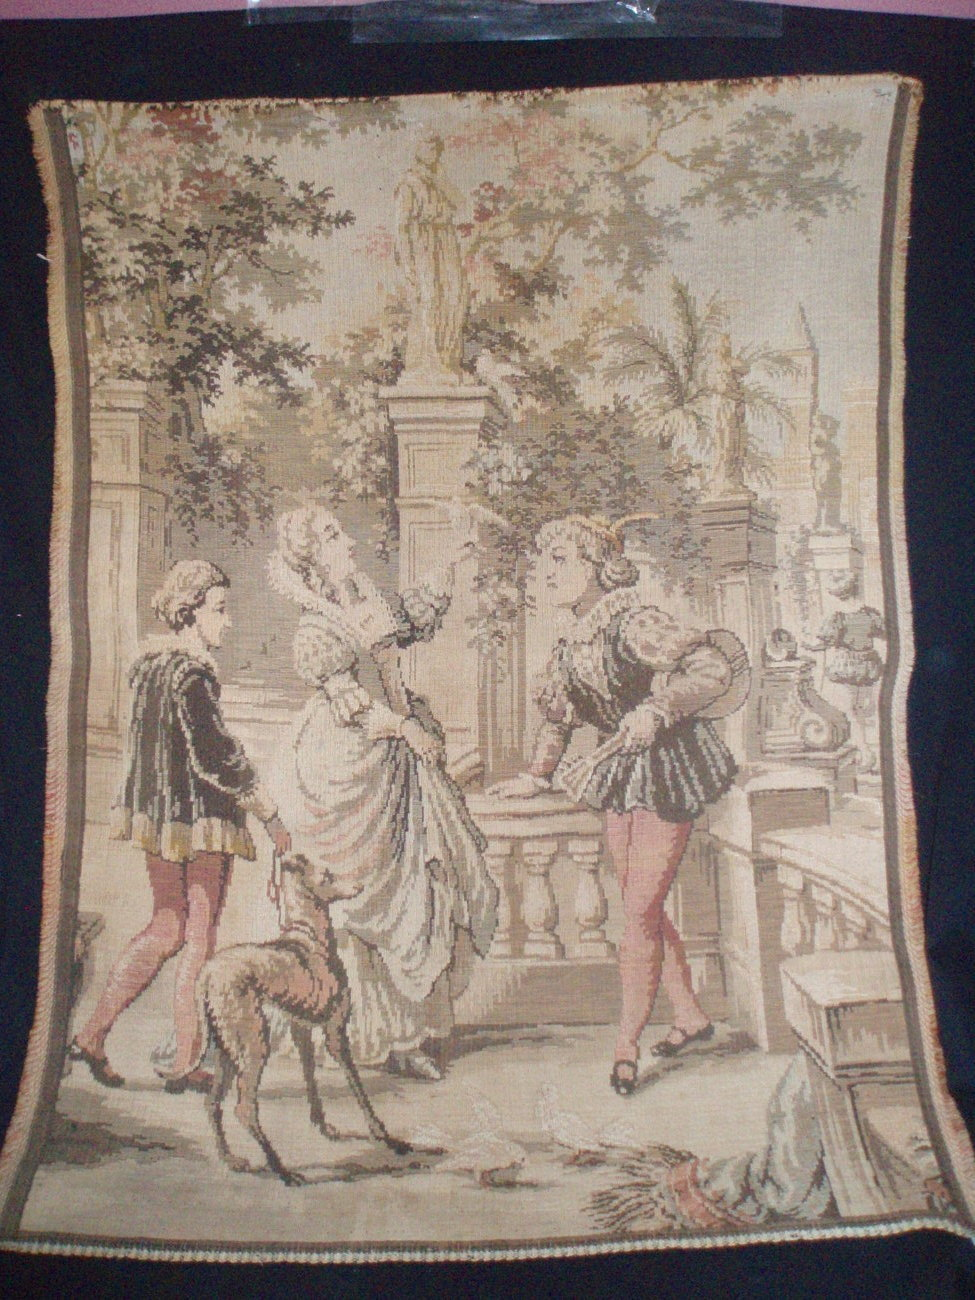 Antique Tapestry wall hanging medieval figures